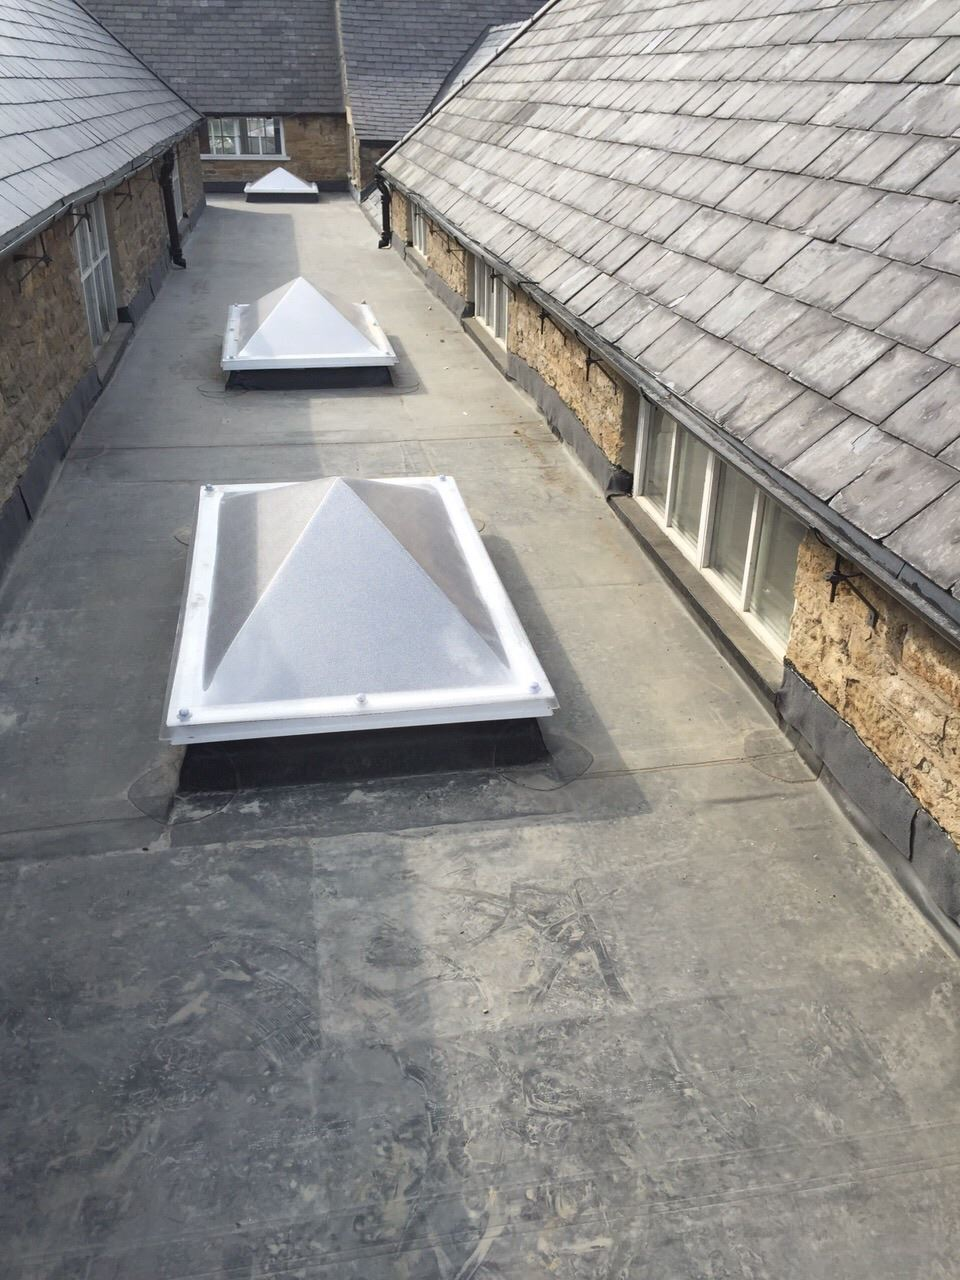 firestone epdm rubber roofing for durham county council. Black Bedroom Furniture Sets. Home Design Ideas